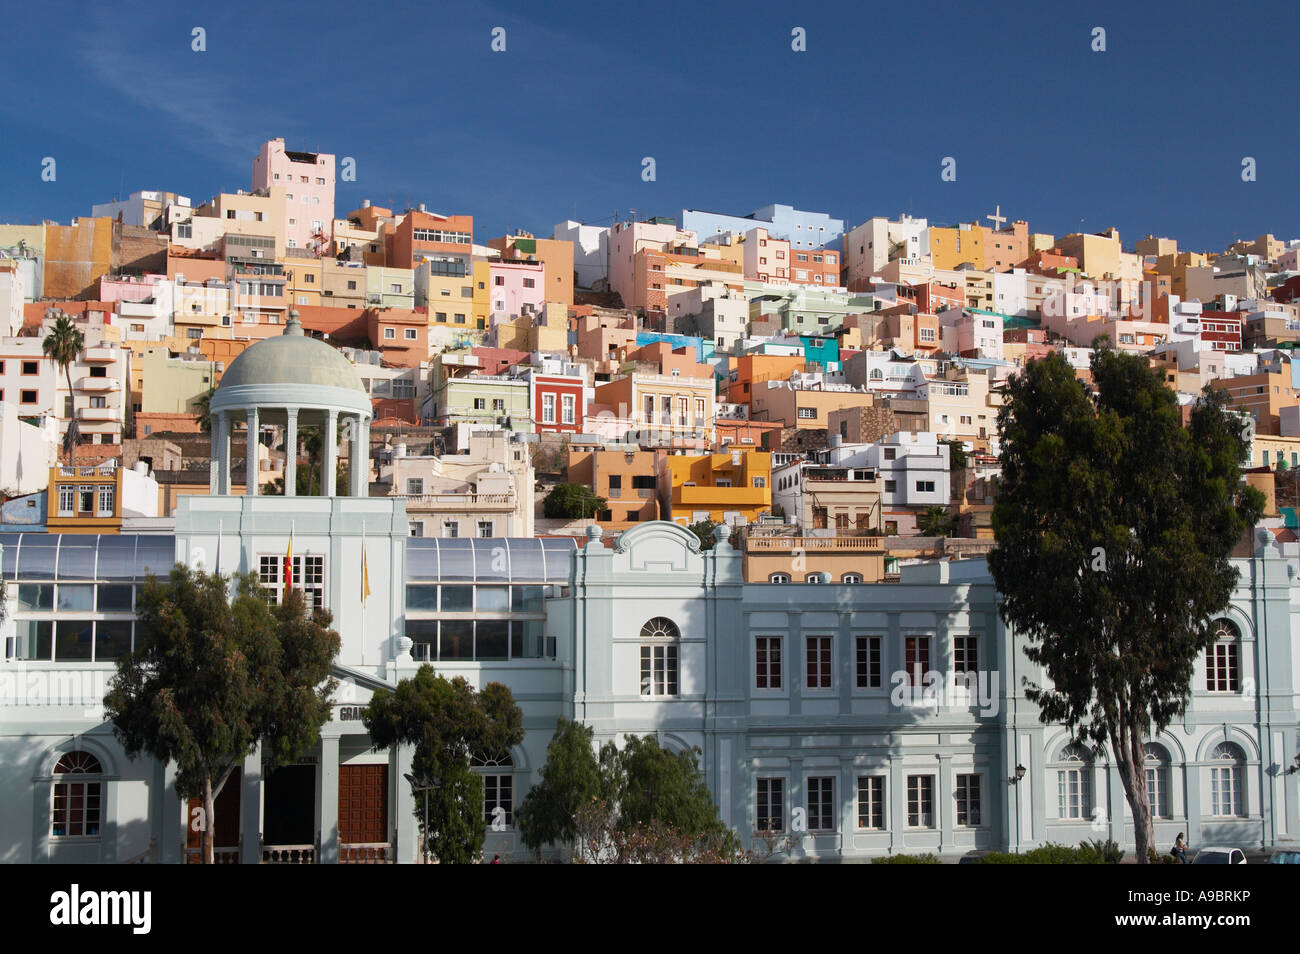 Colourful houses las palmas gran canaria canary islands - Houses in gran canaria ...